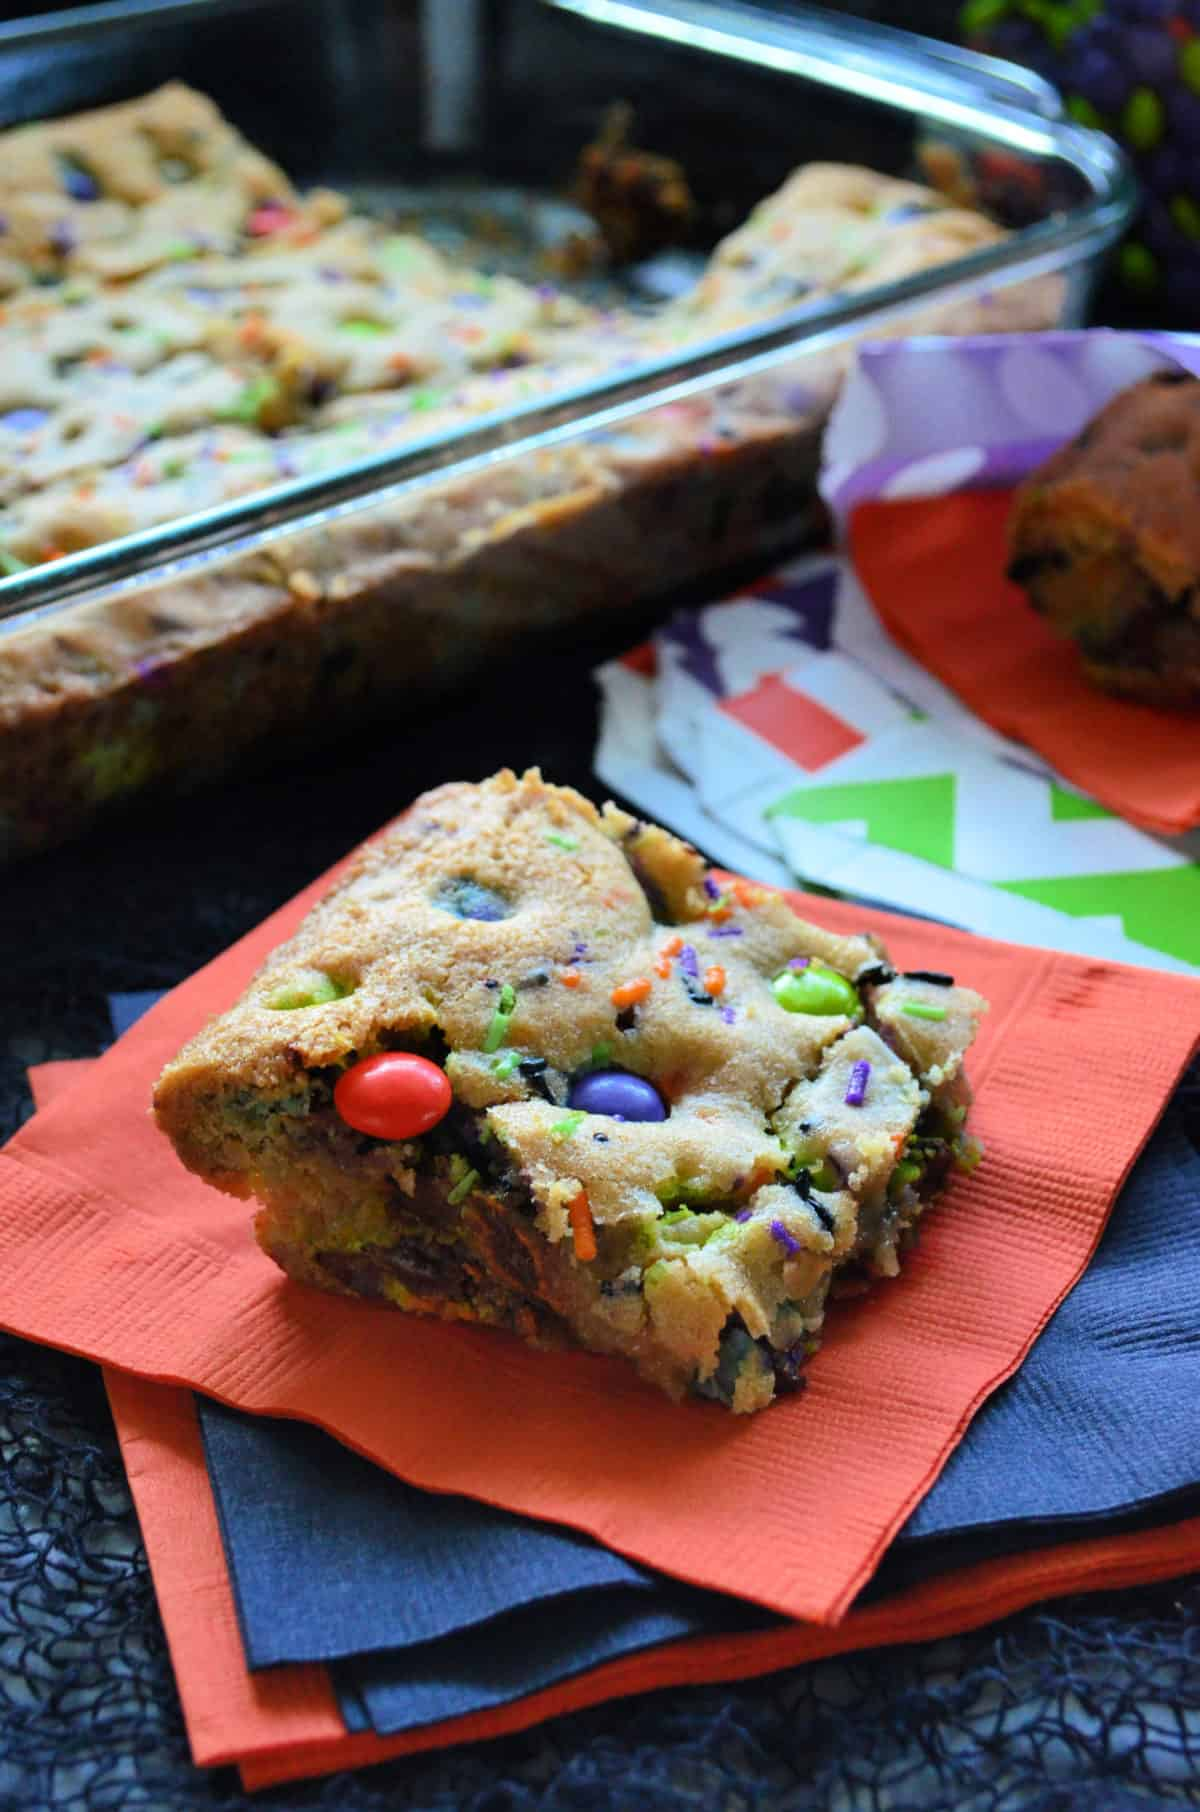 cookie bar square made with orange, purple, and green M&Ms and sprinkles on orange napkin.